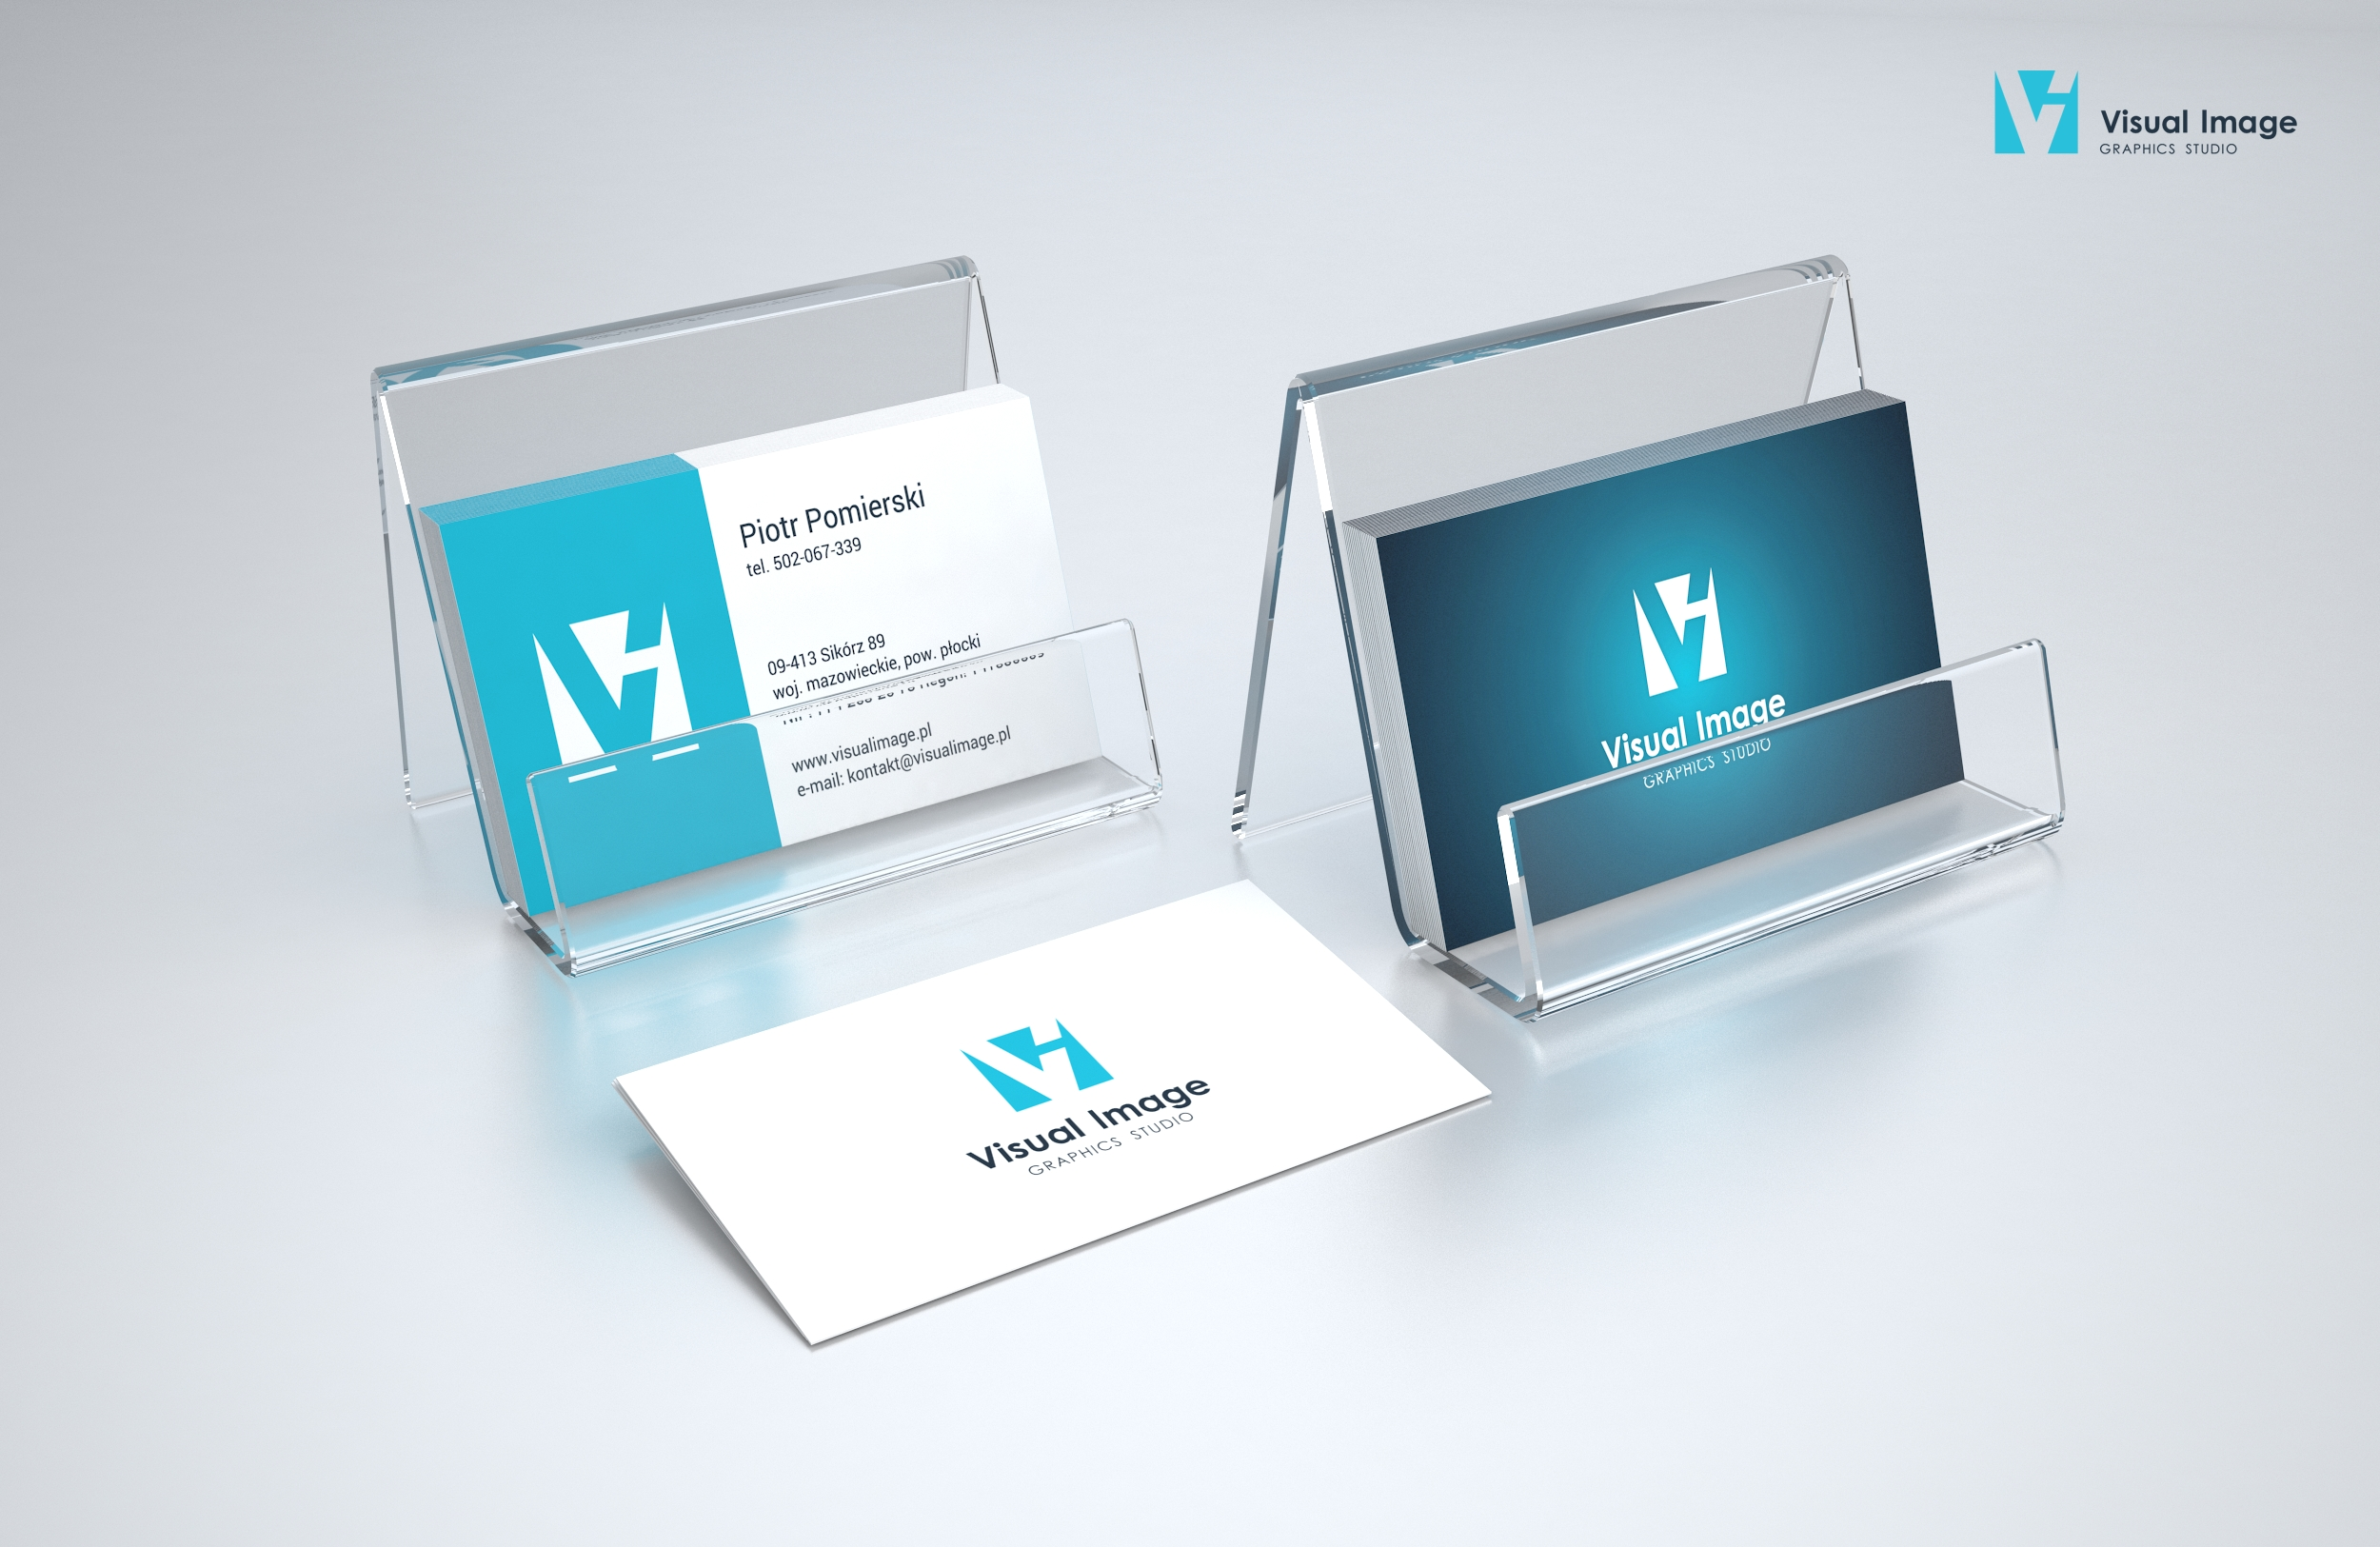 3D graphics 3D animations Visual Image